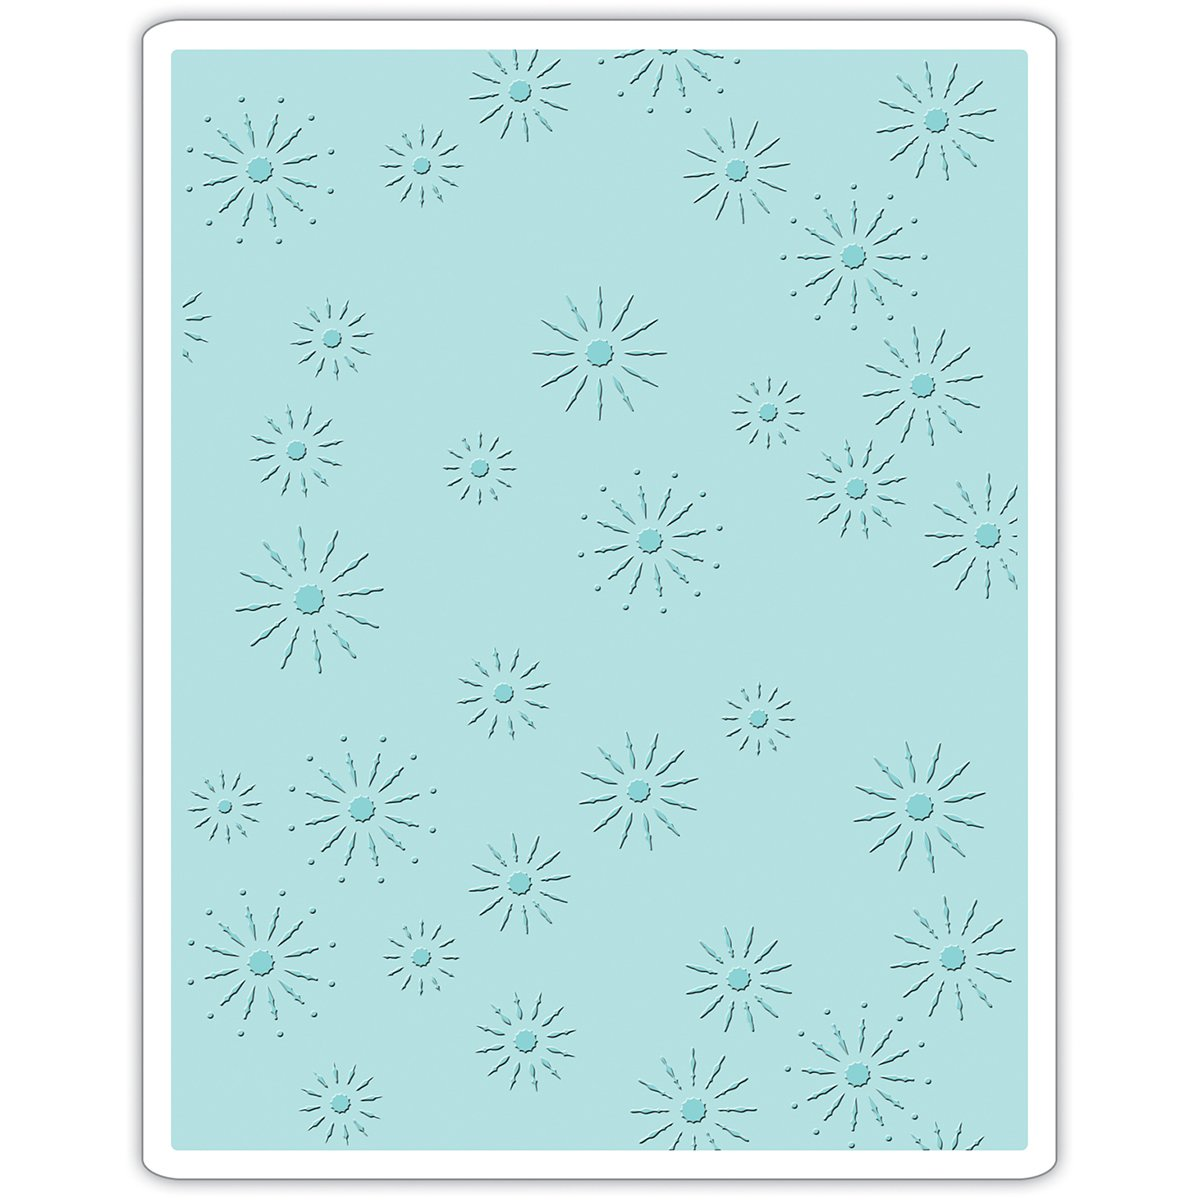 Sizzix 661001 Texture Fades Embossing Folder Sparkles by Tim Holtz